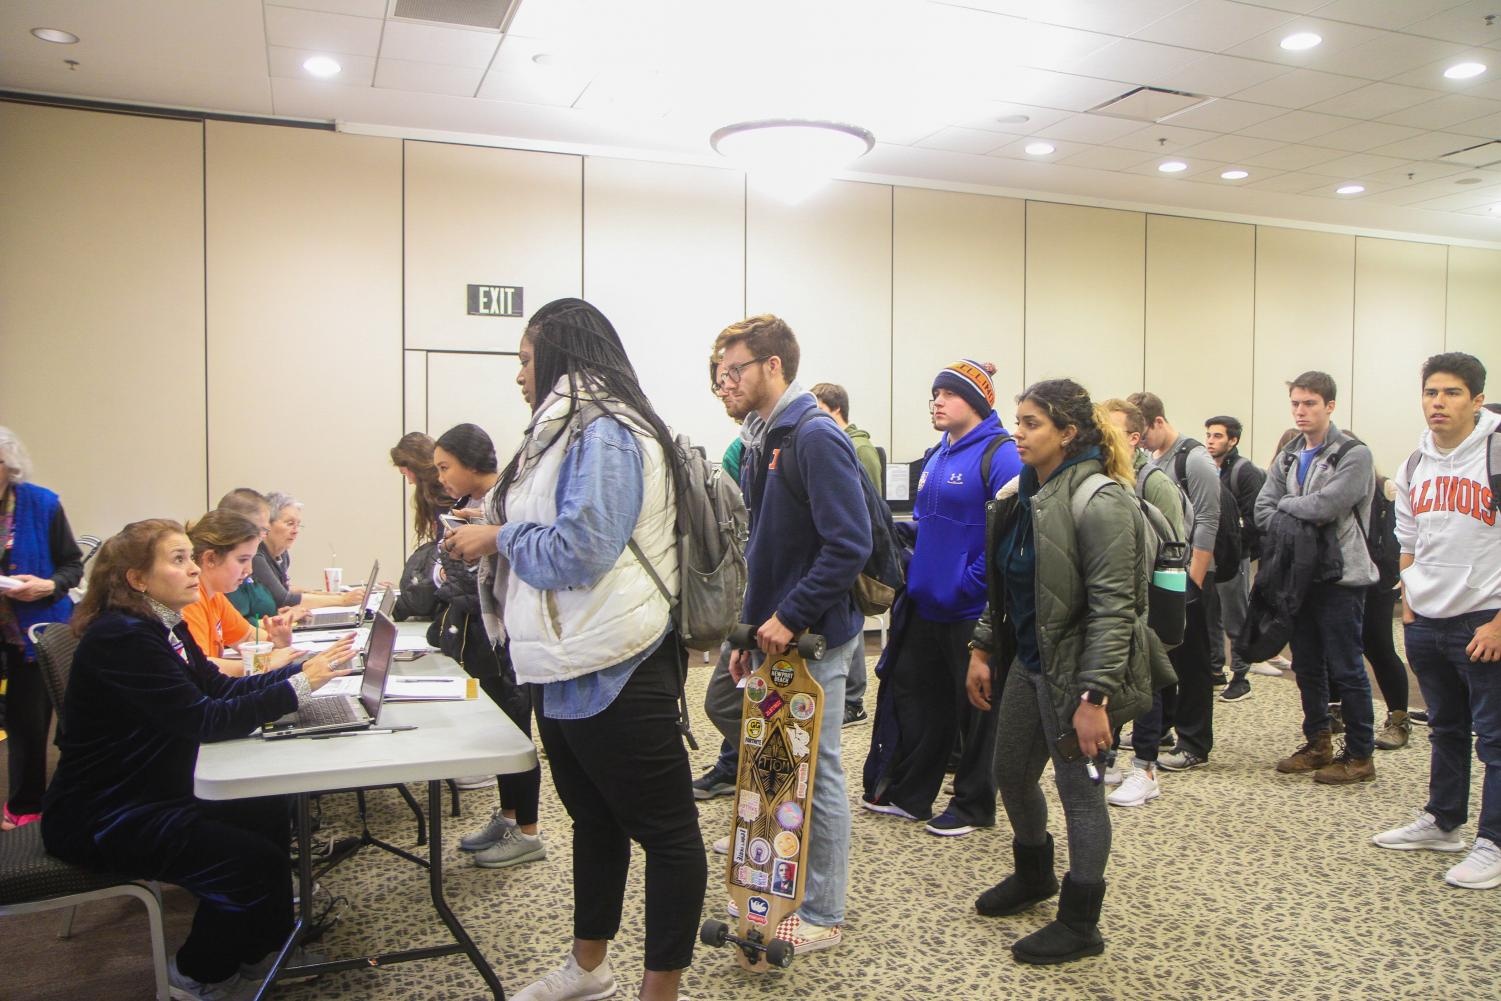 Students lined up at Ikenberry Hall to vote on election day.